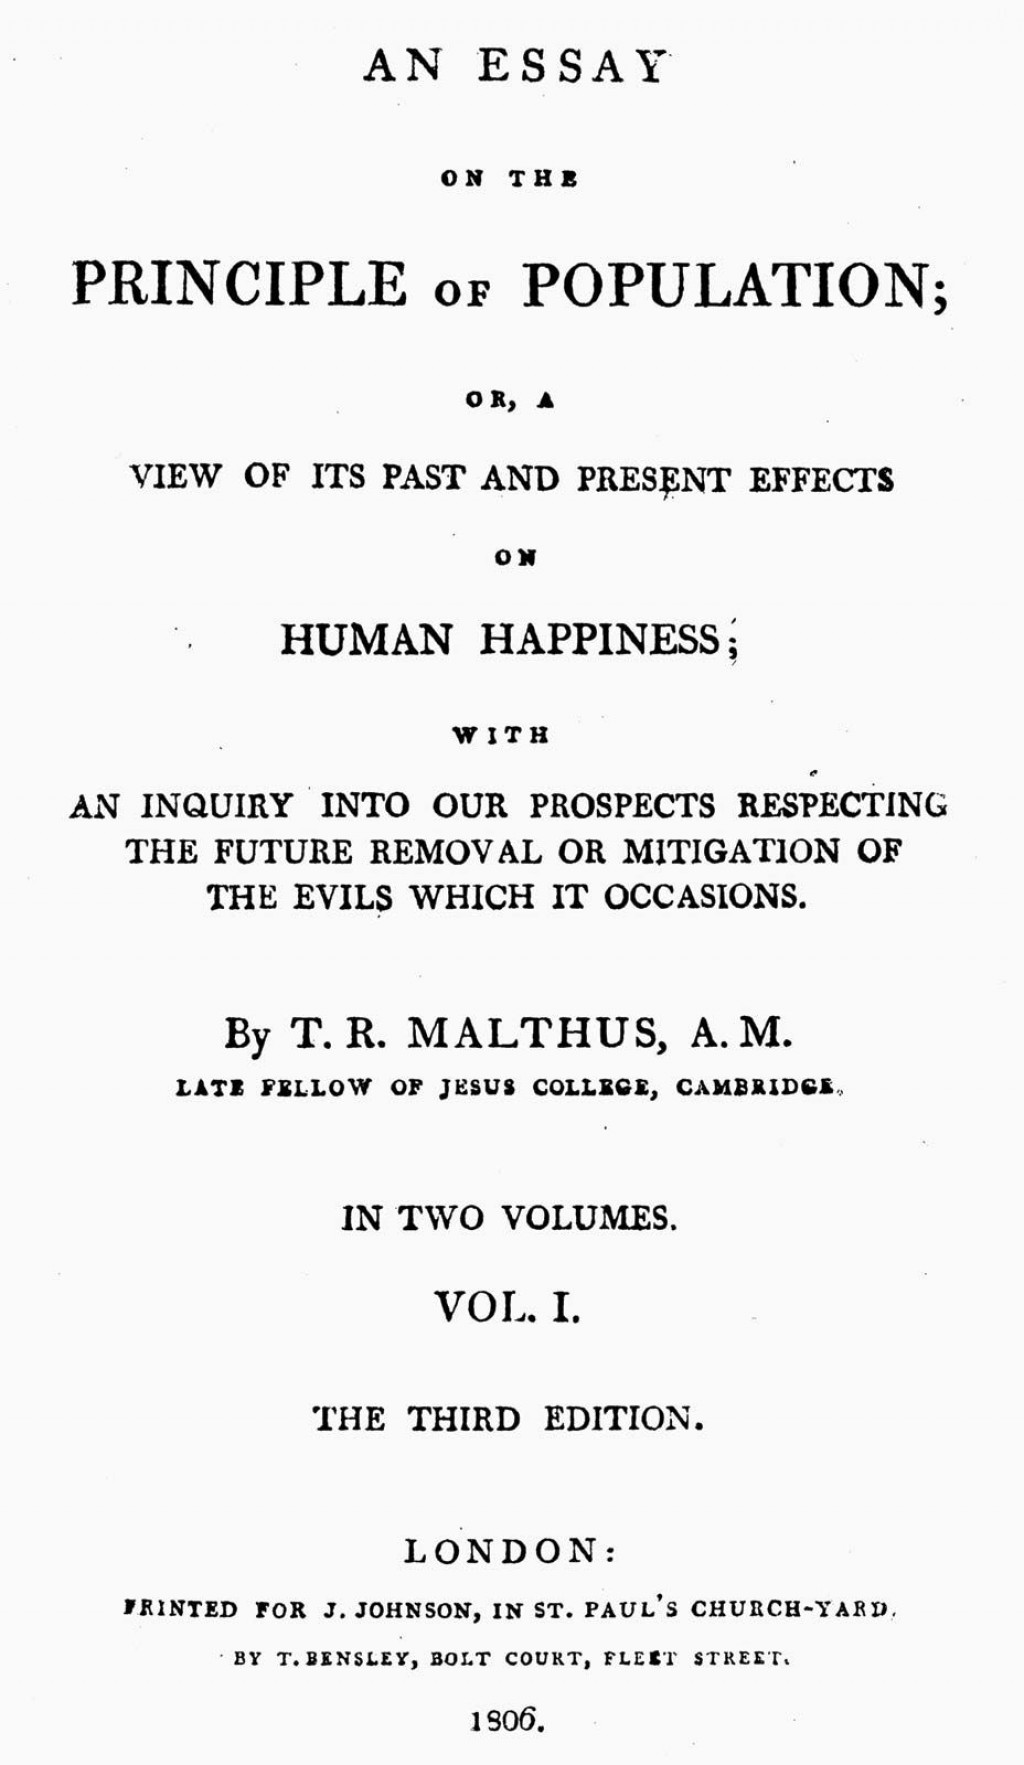 017 Thomas Malthus An Essay On The Principle Of Population Marvelous Summary Analysis Argued In His (1798) That Large